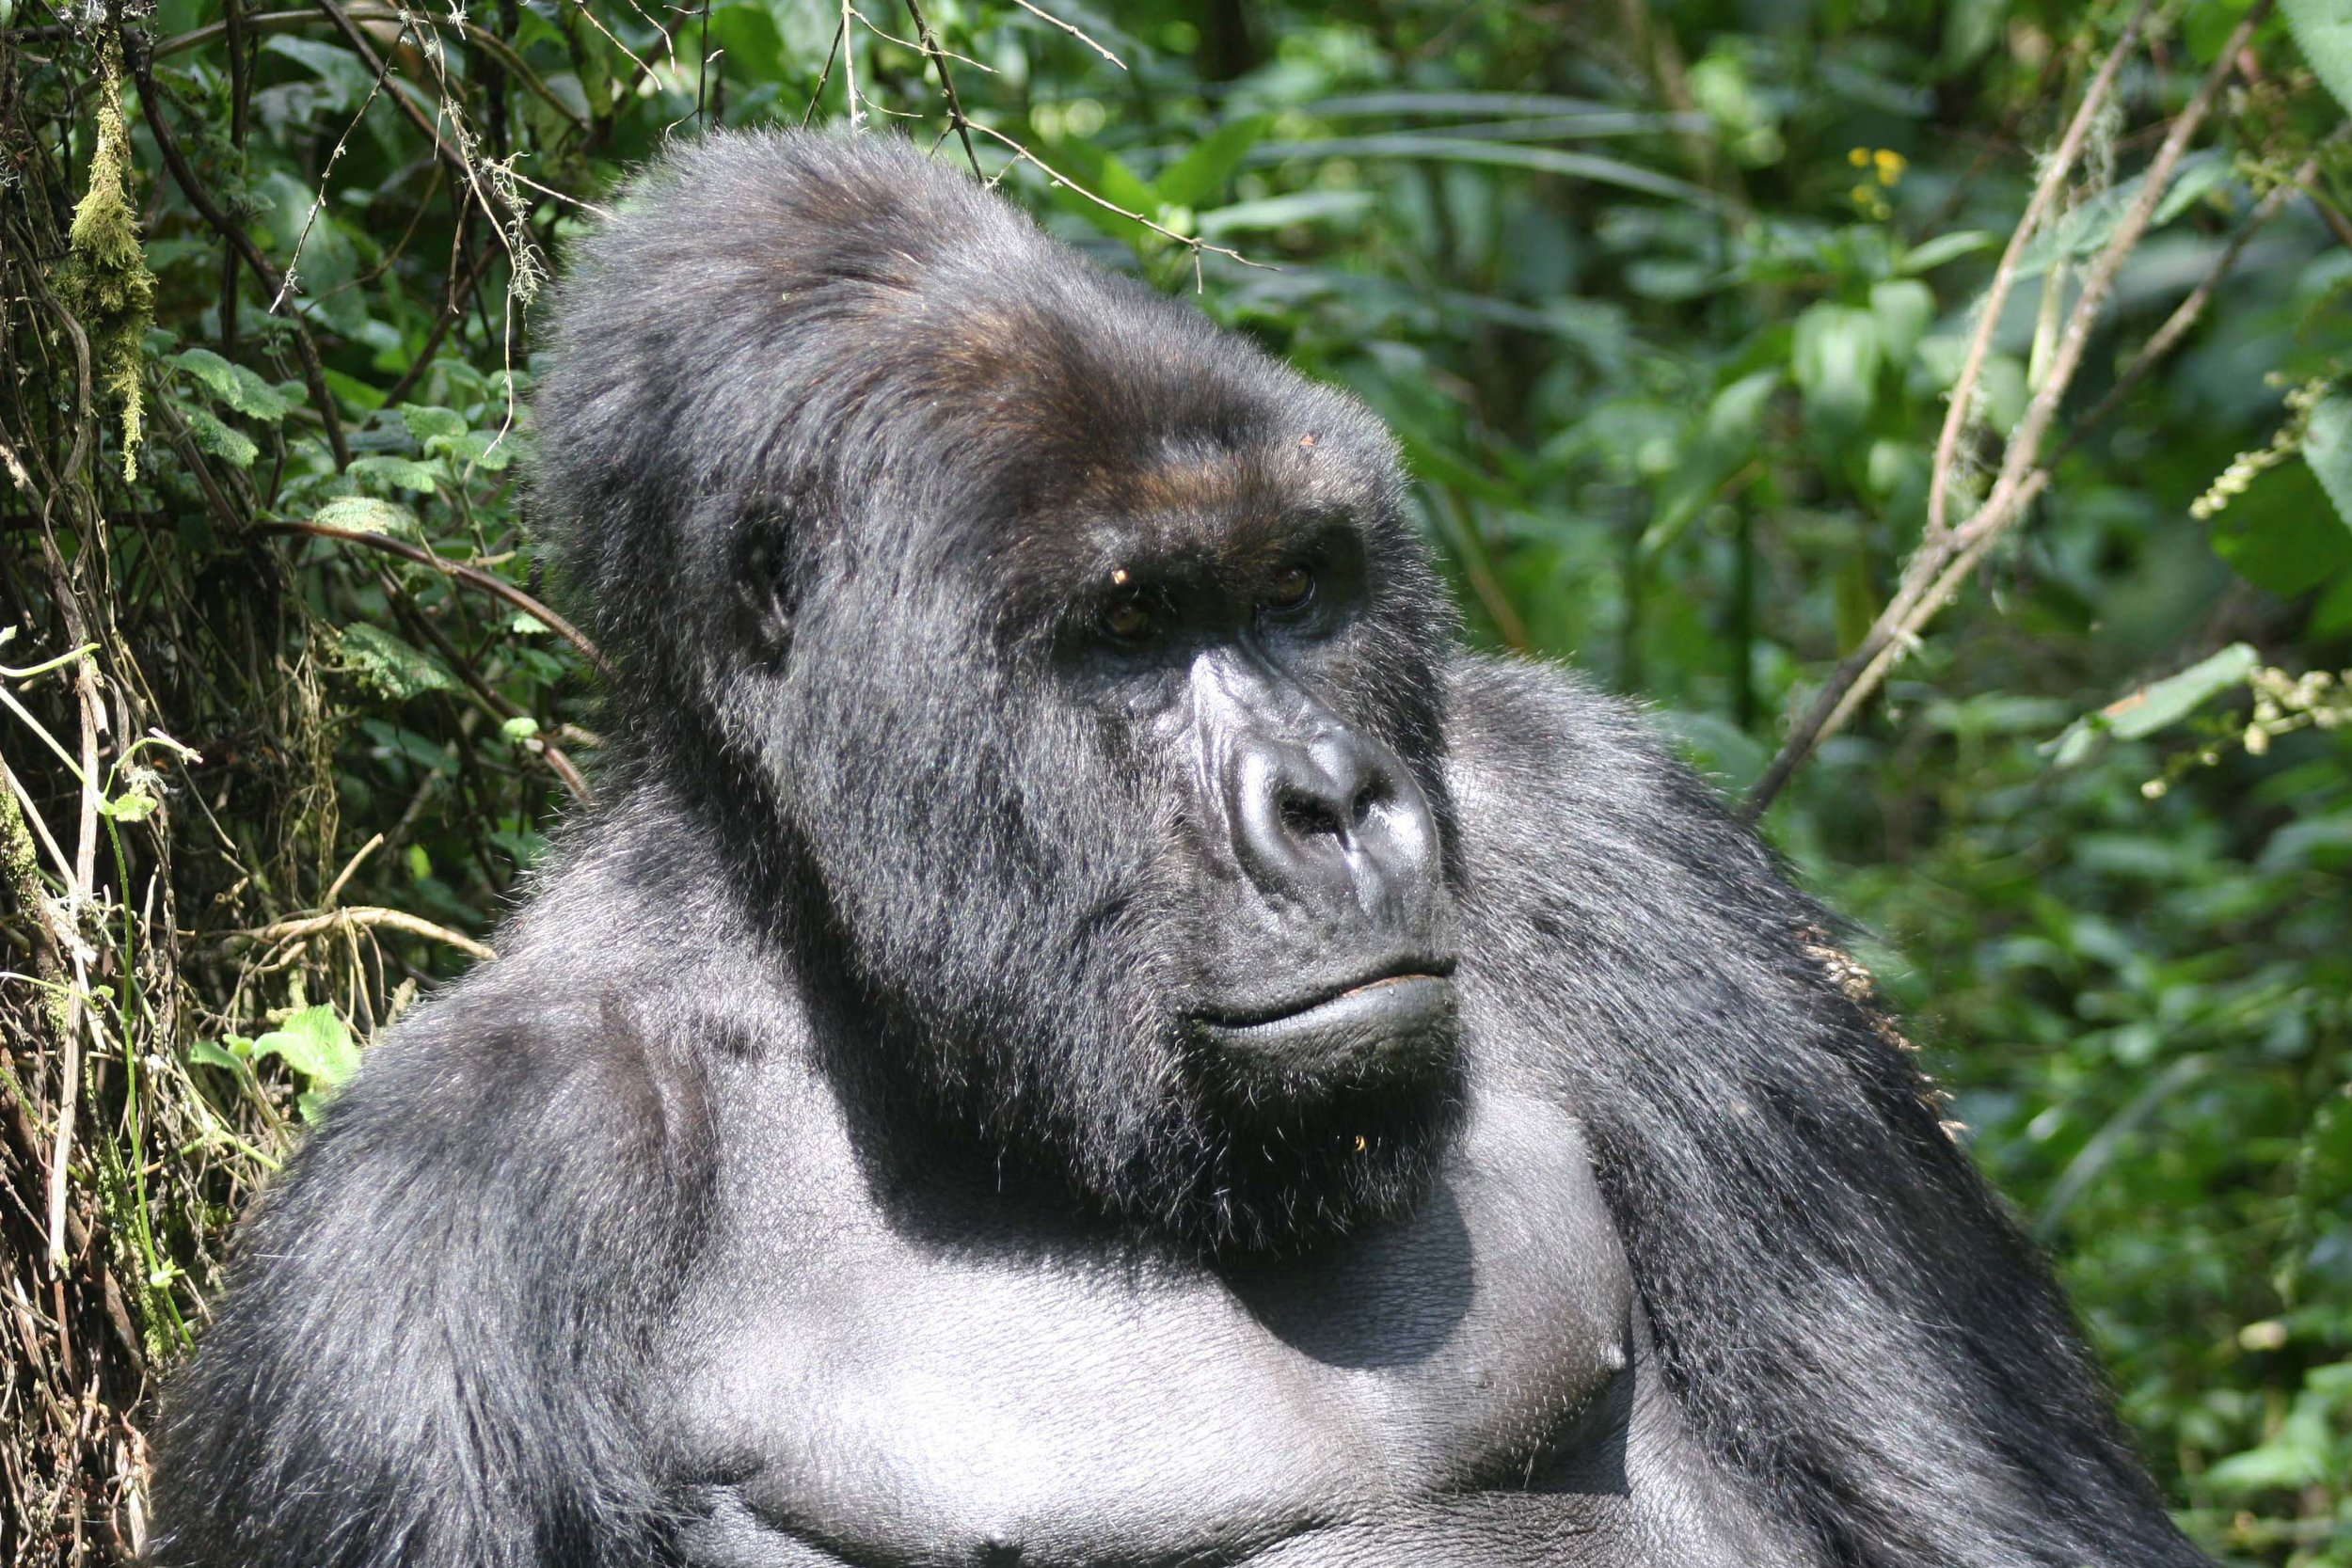 This enormous silverback kept a close eye on our group during our visit © Sarah Reid